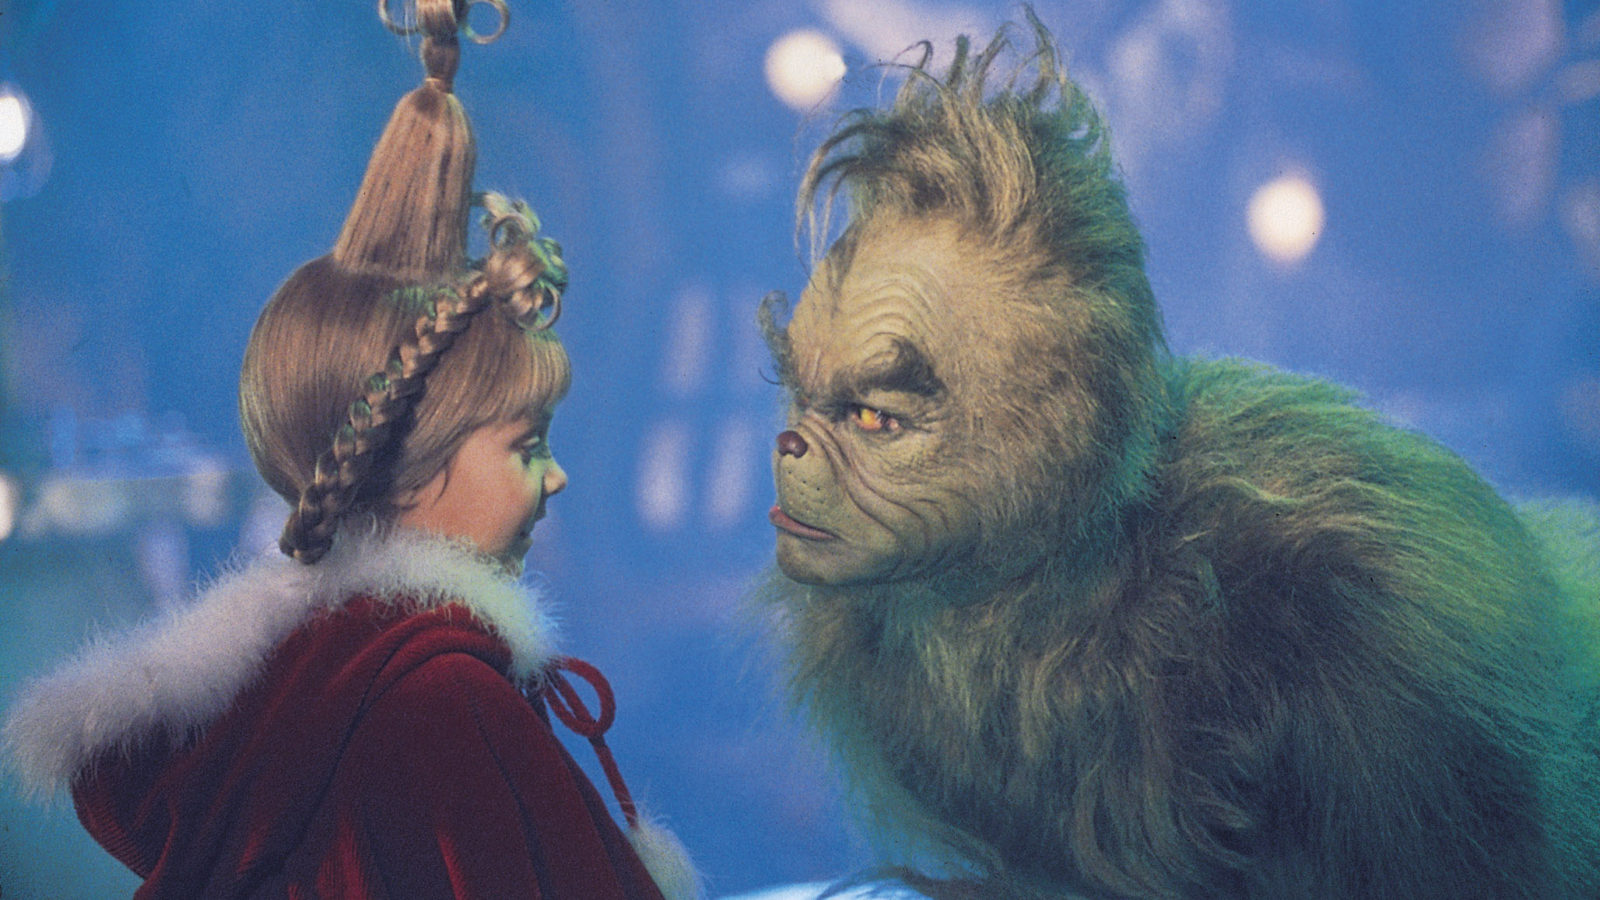 How The Grinch Stole Christmas Movie.Bristol Film Festival How The Grinch Stole Christmas